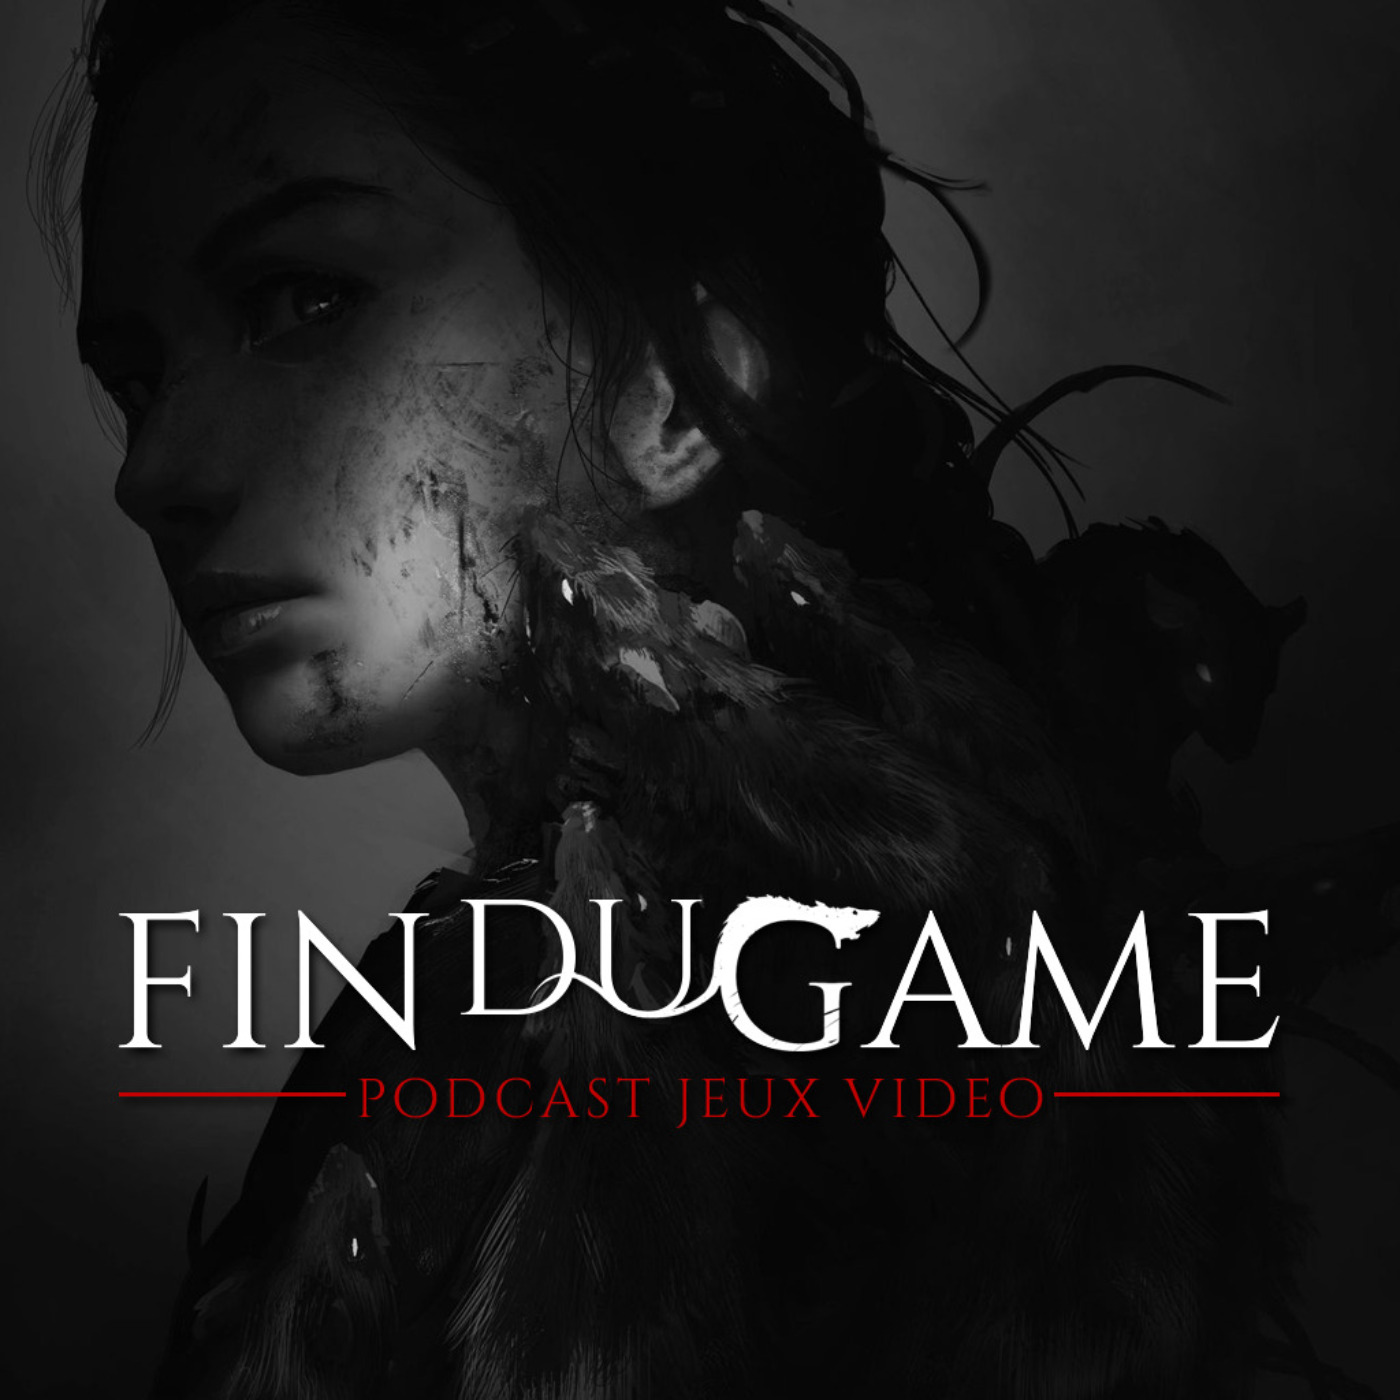 Episode 30 - A Plague Tale: Innocence